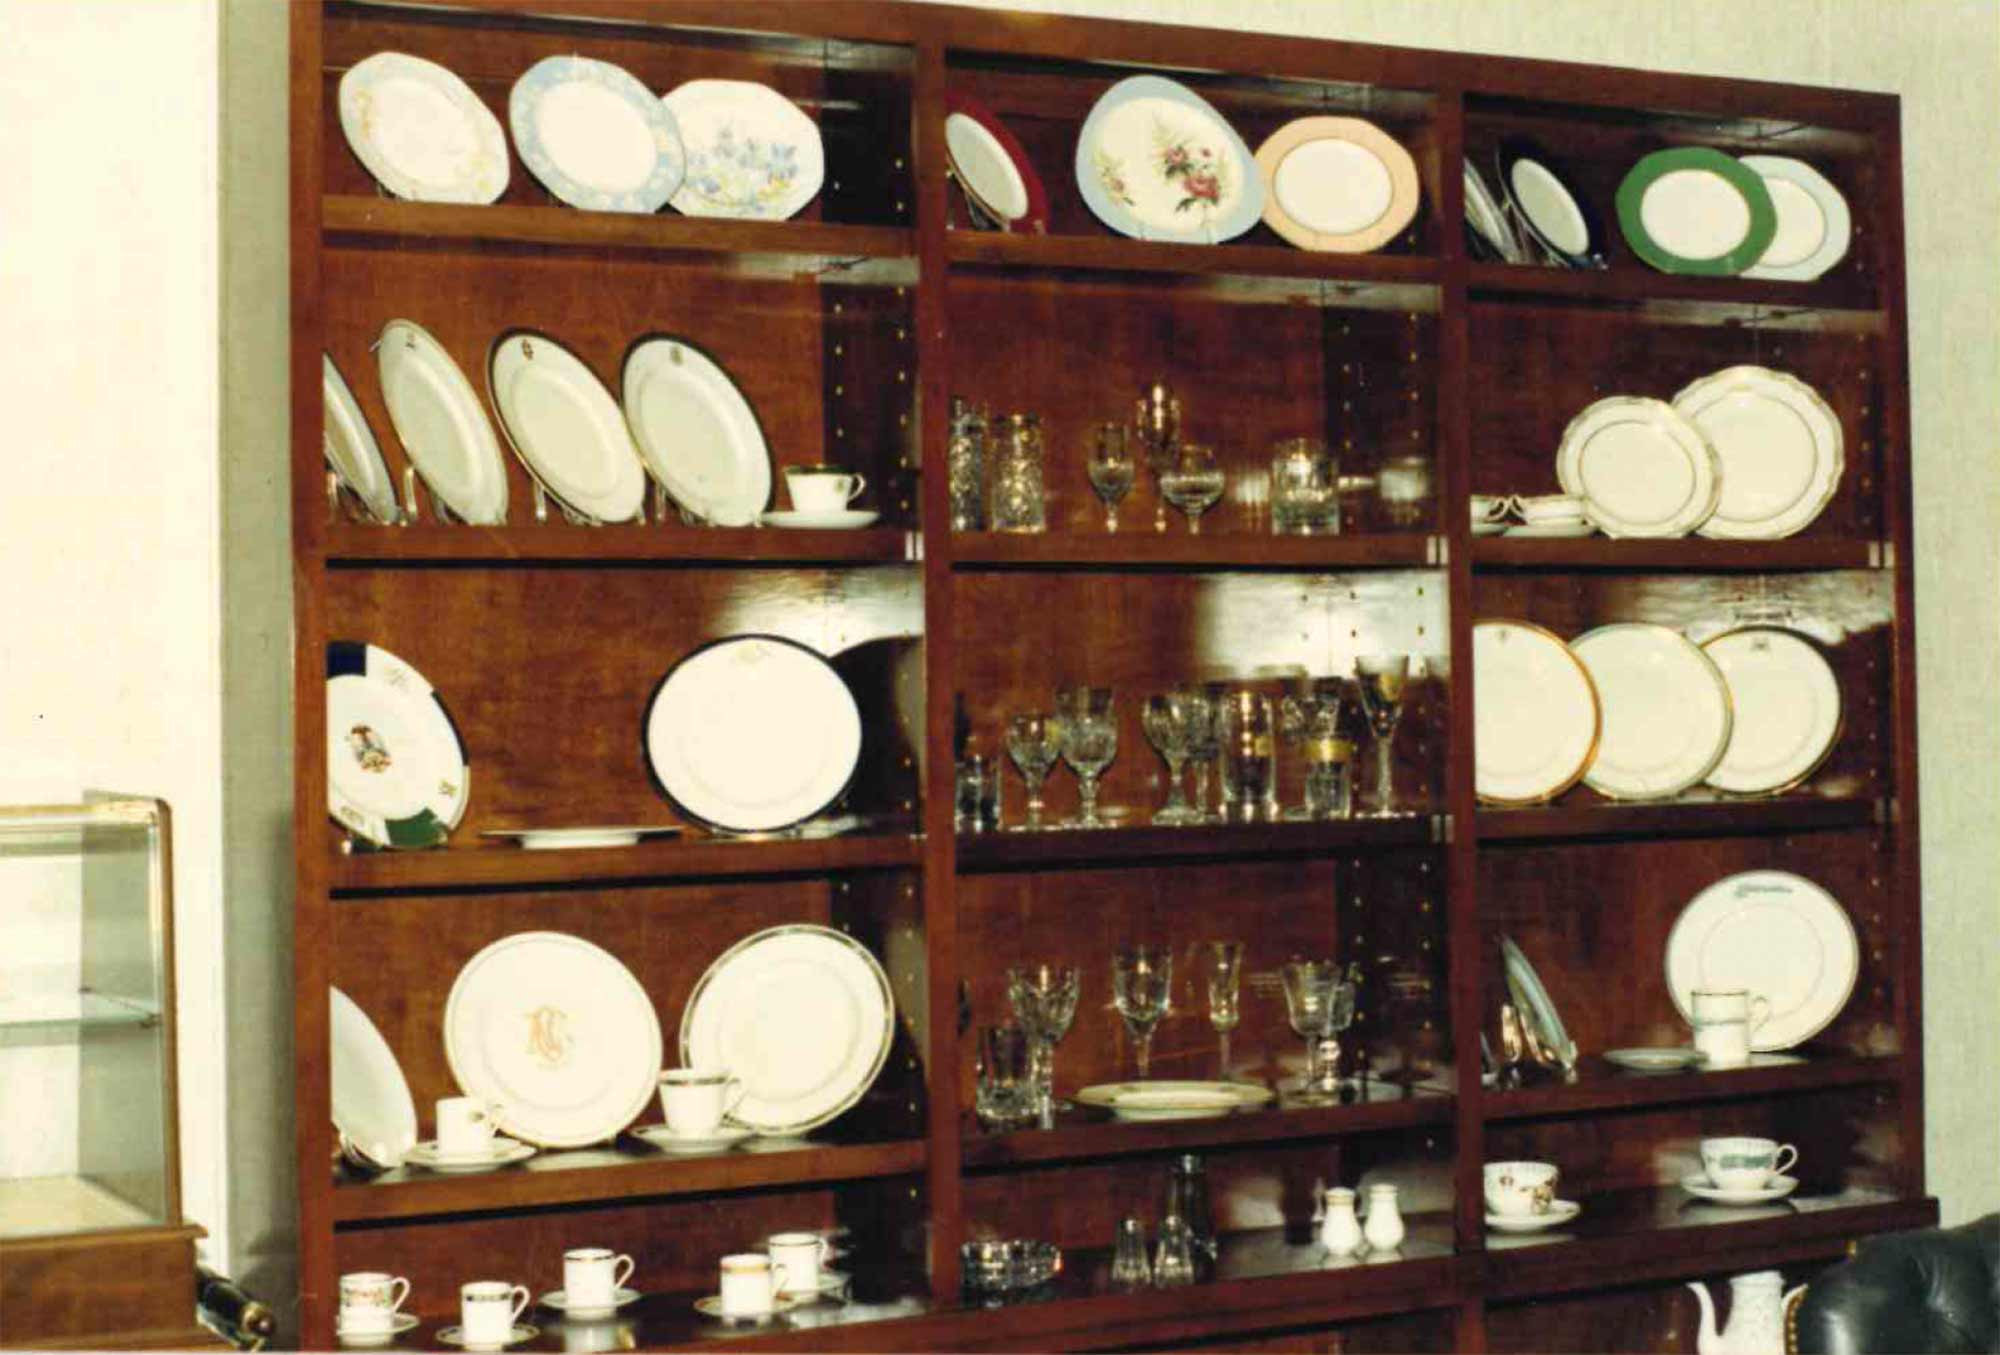 Sample china, crystal and flatware at the head office of Dahlgren Duck